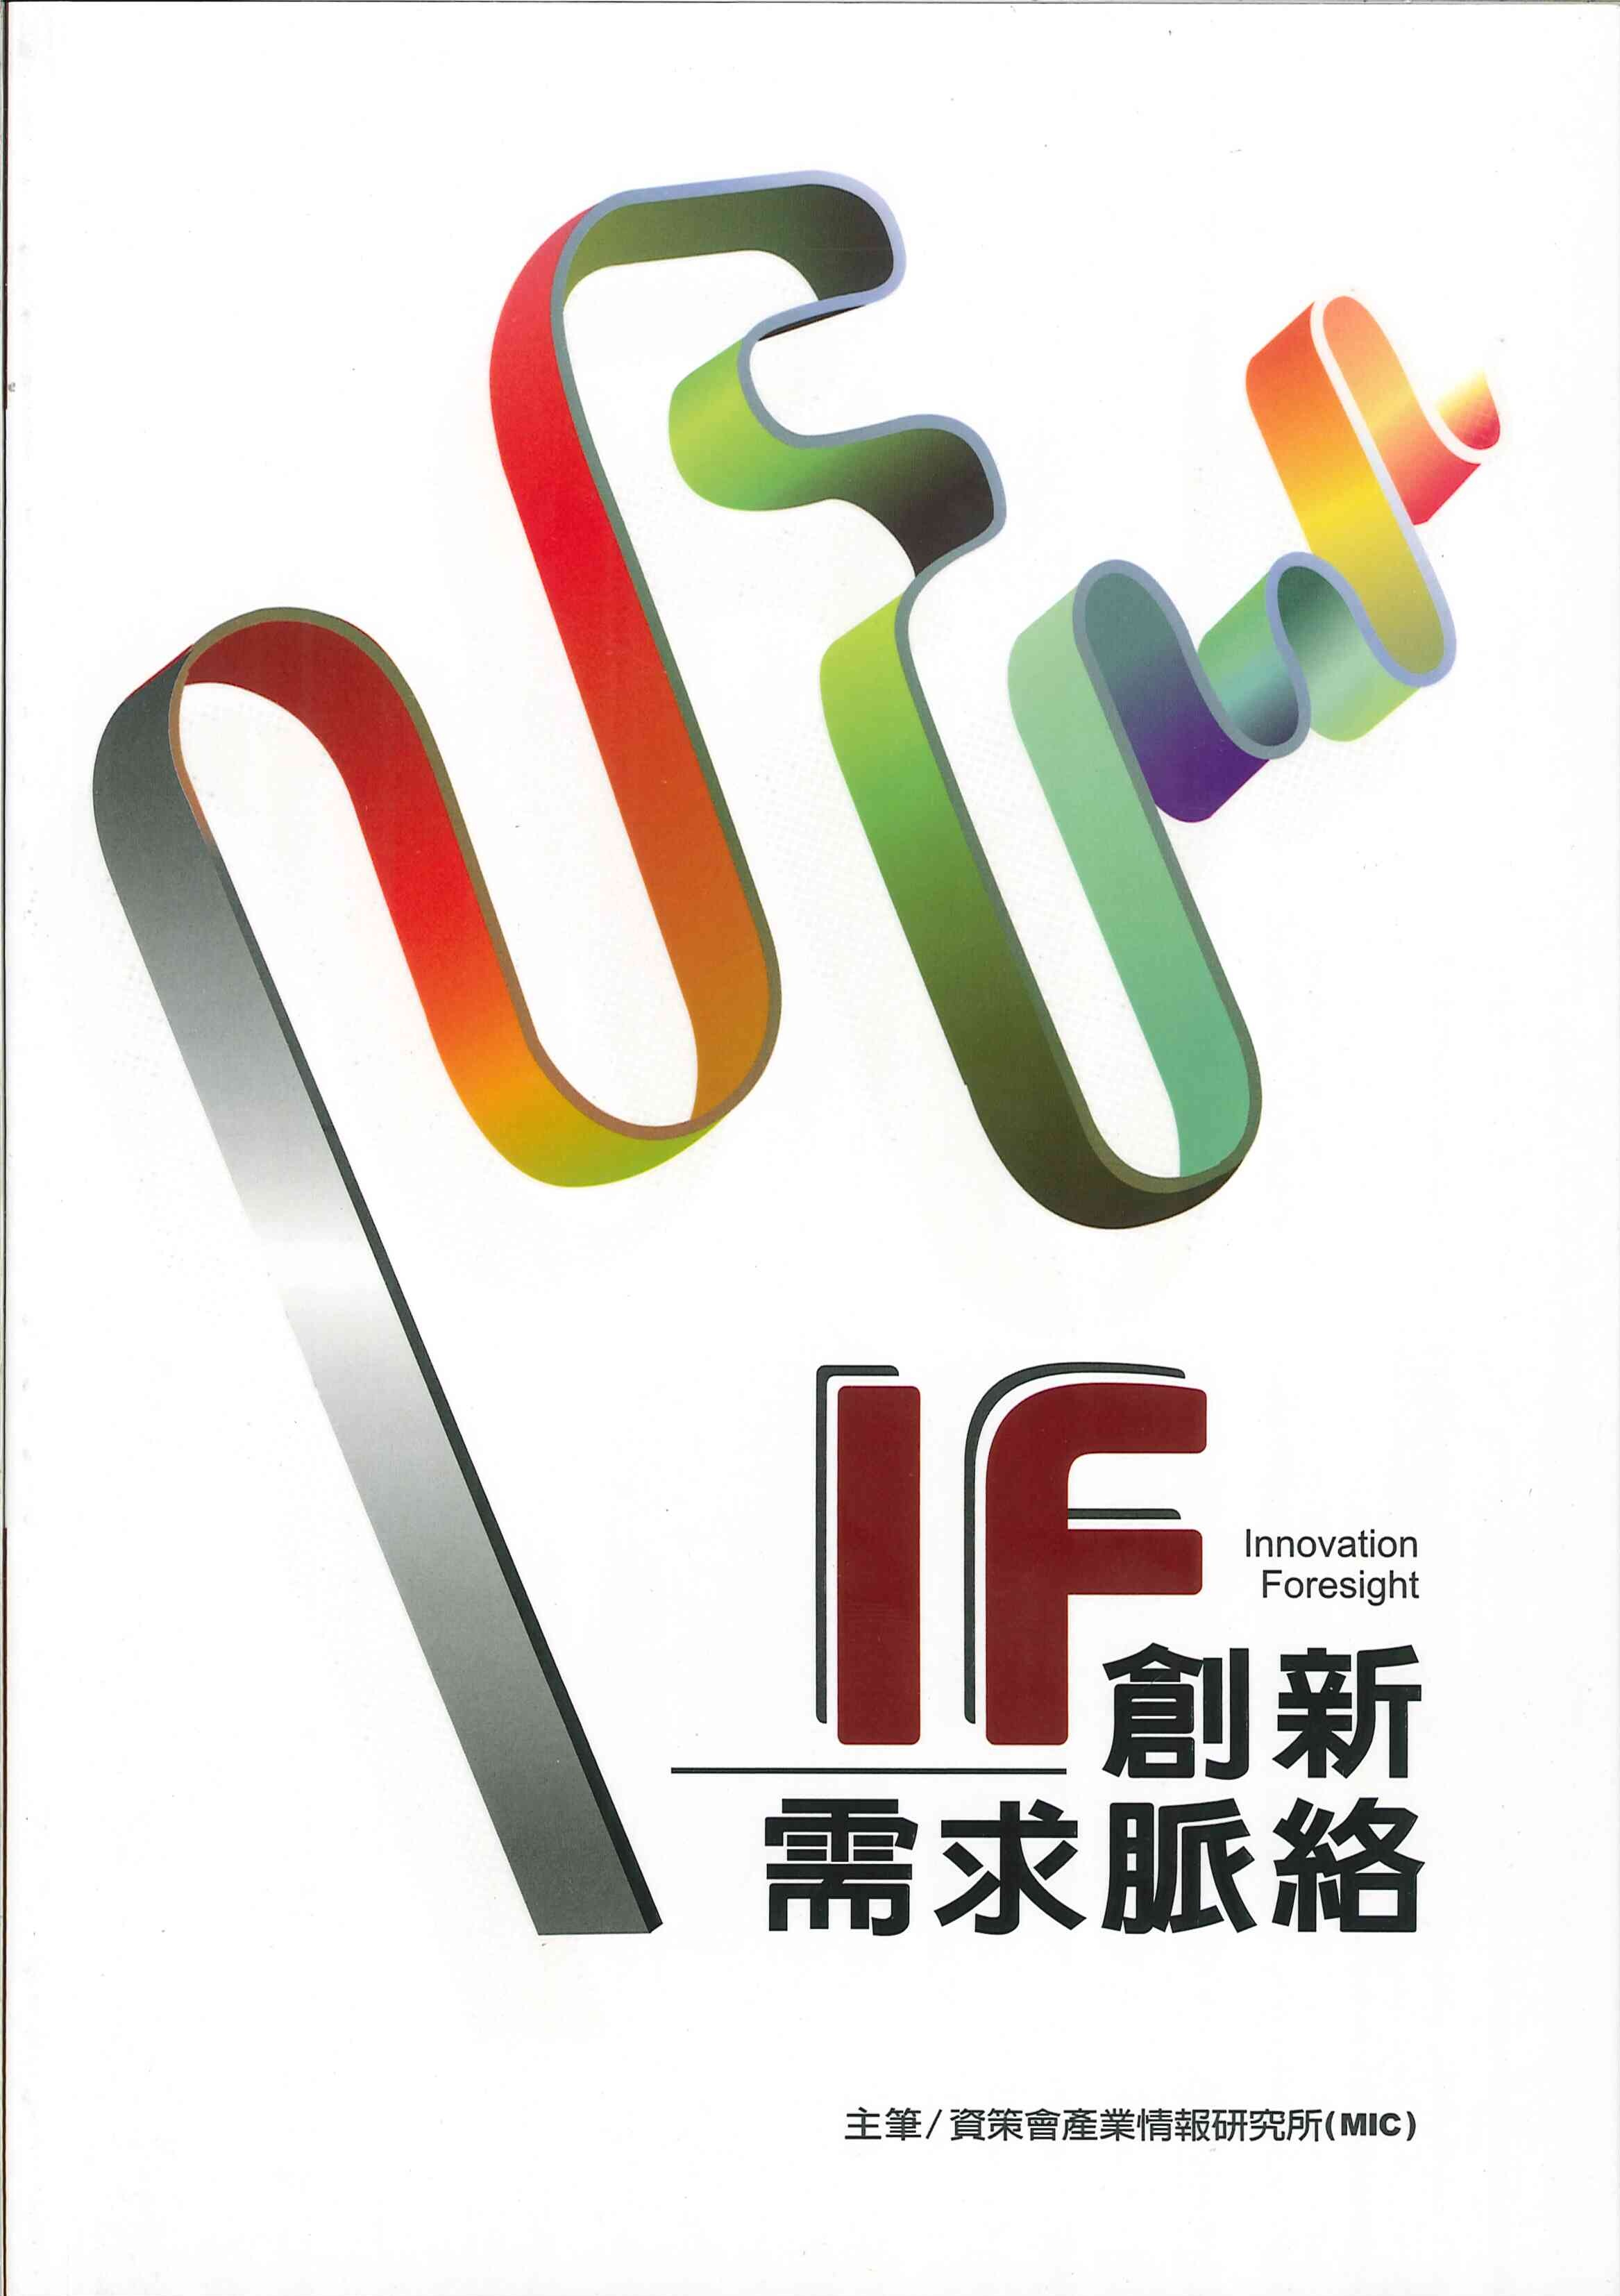 創新需求脈絡IF=Innovation foresight